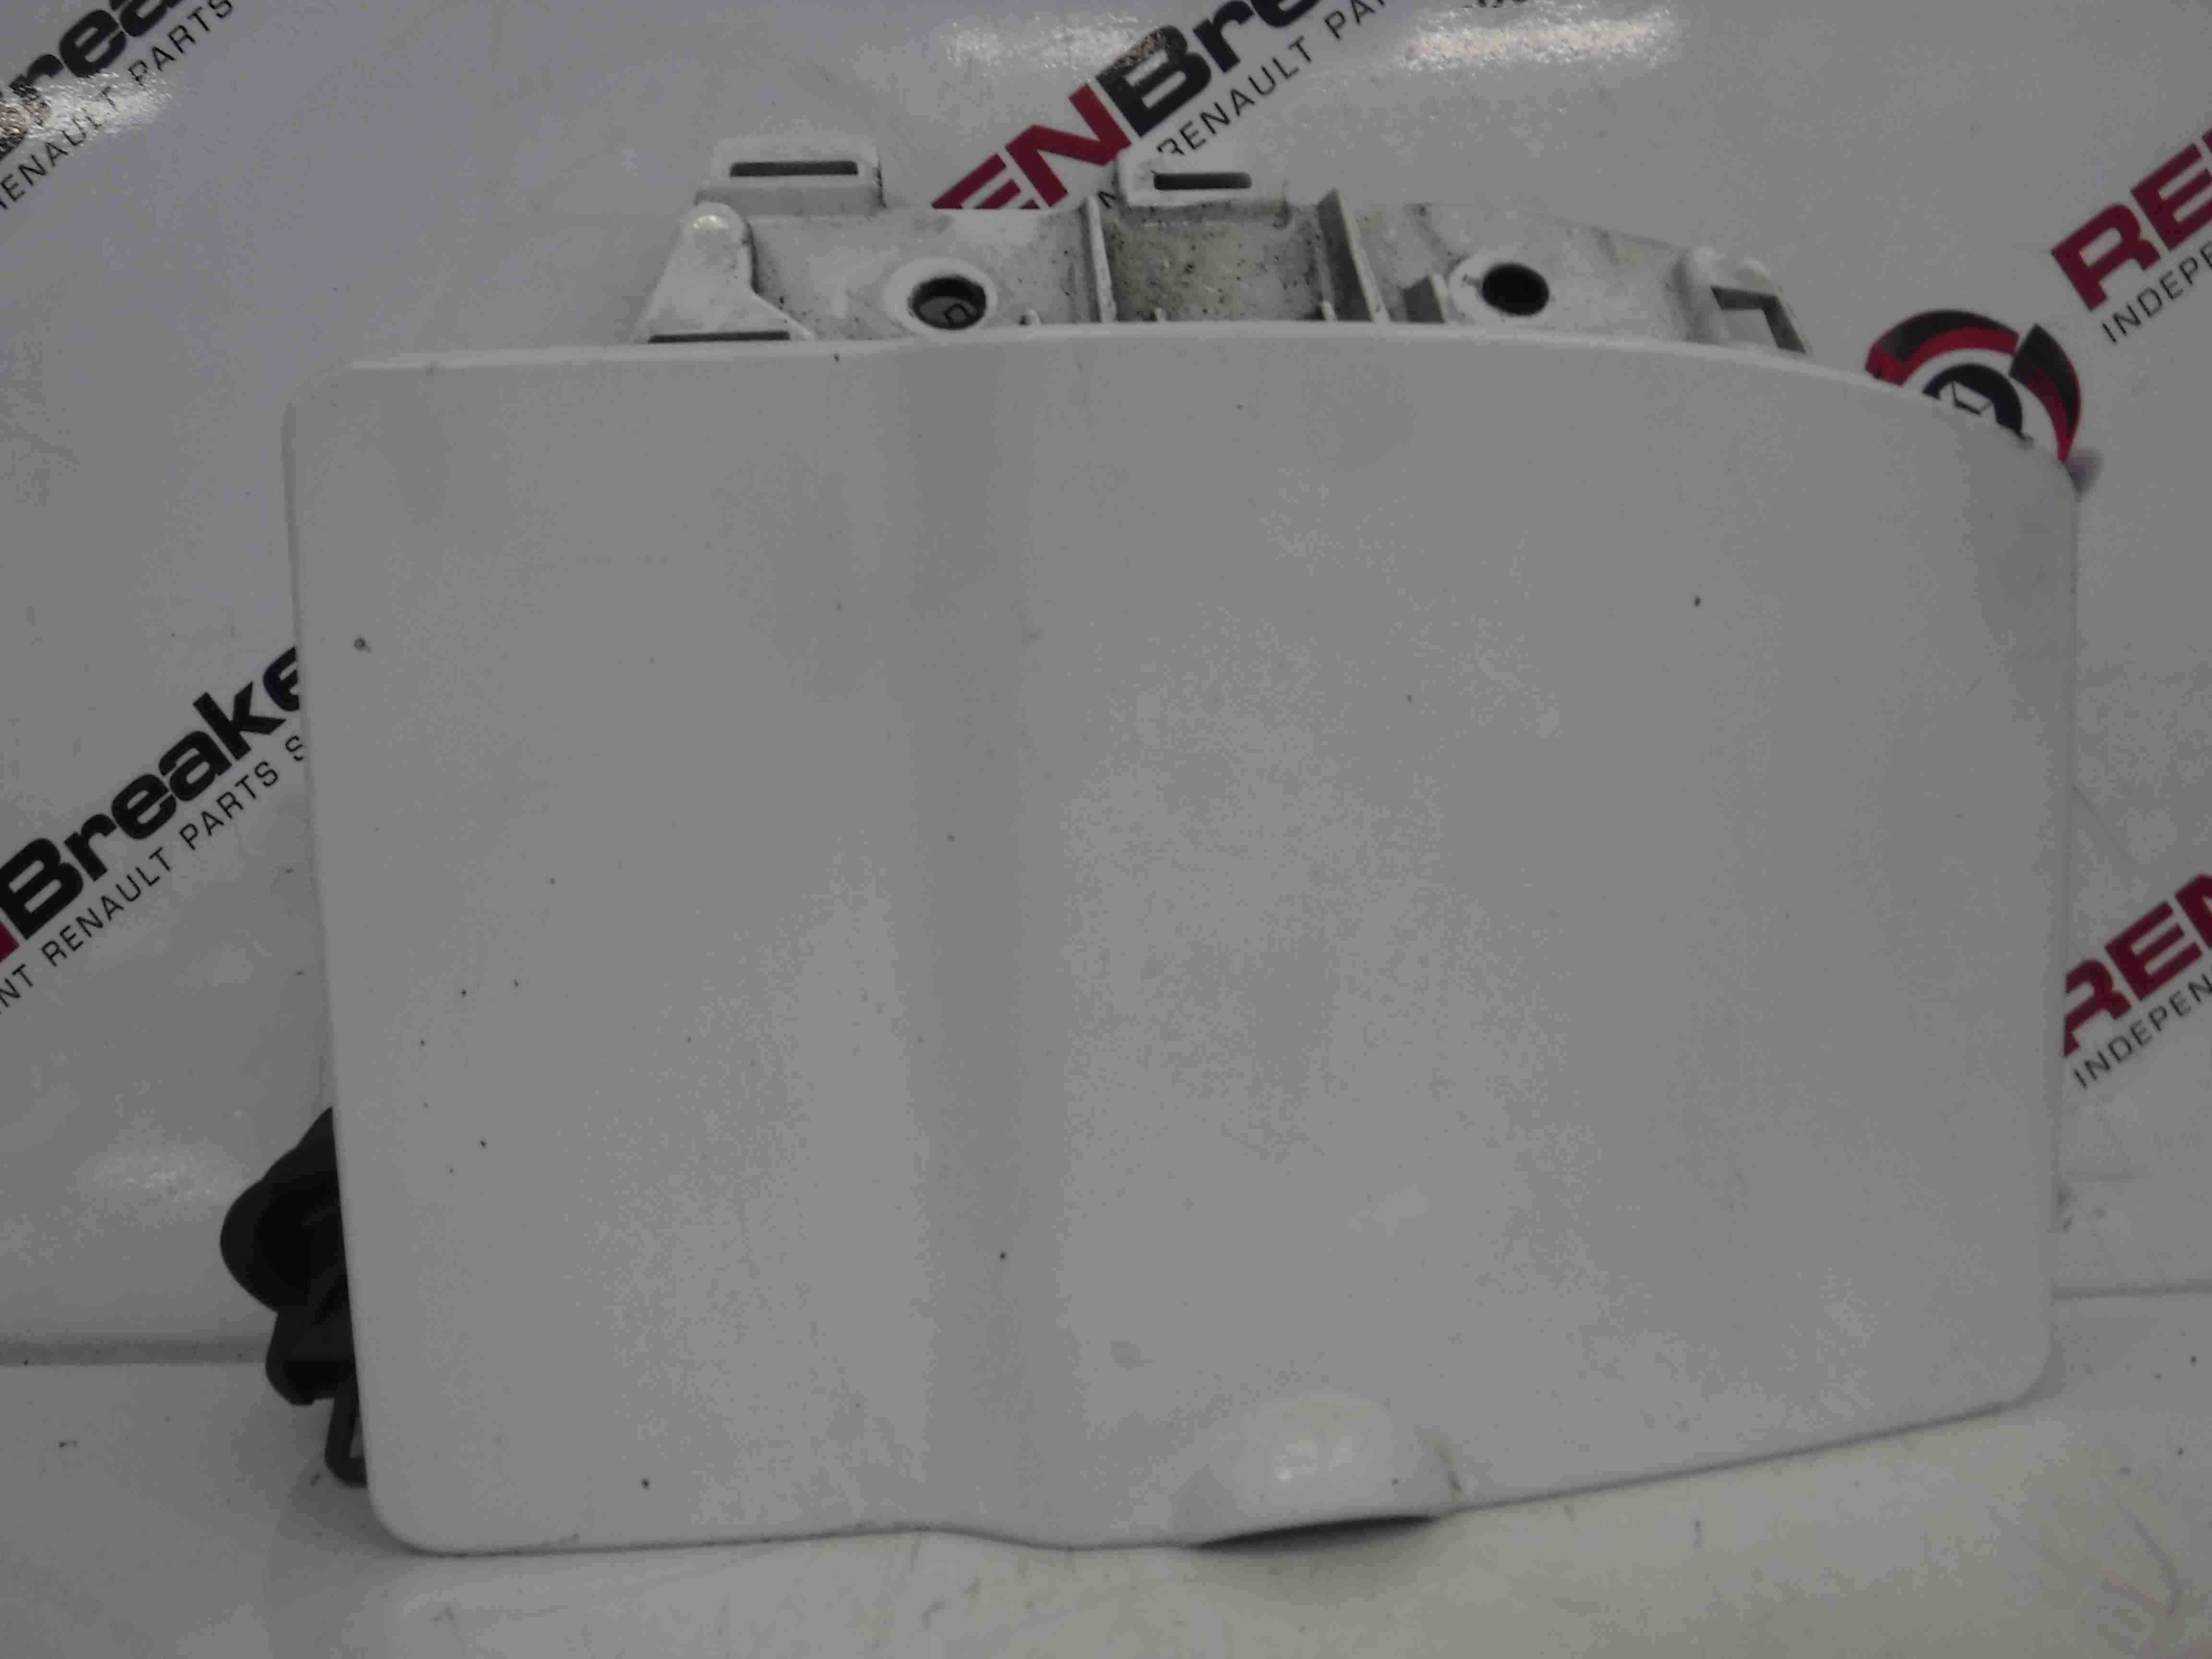 Renault Trafic 2001-2006 Fuel Flap Cover White OD31 8200023826